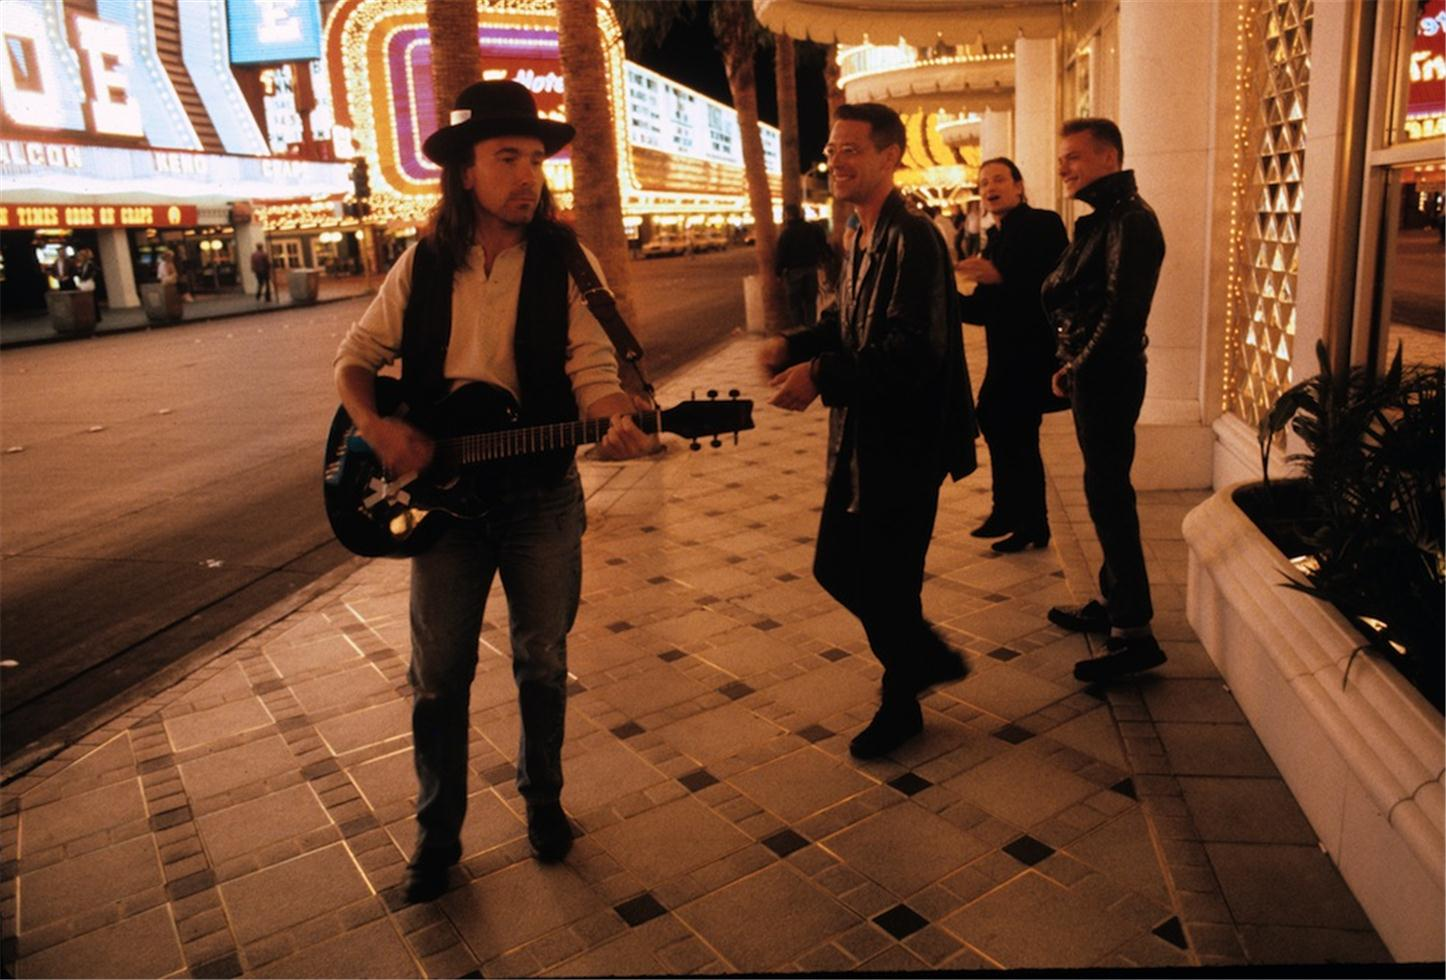 u2-vegas-strip